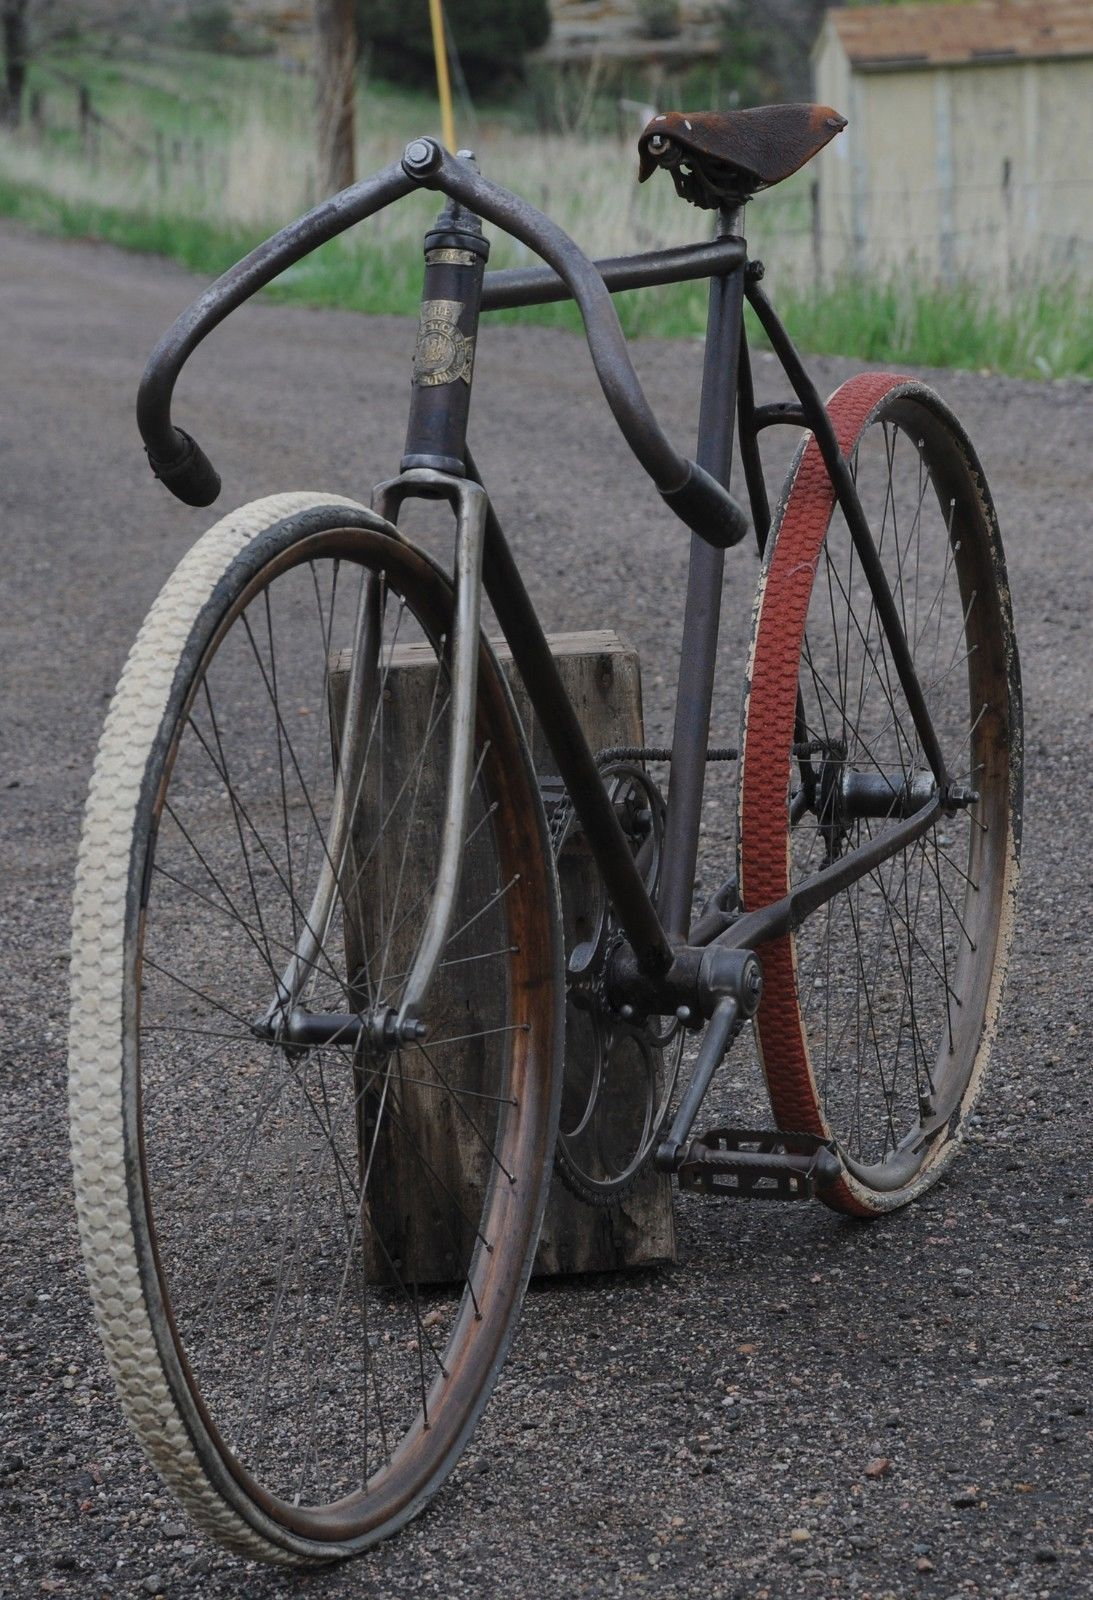 Pin by James Anderson on Interesting Only | Pinterest | Bicycling ...